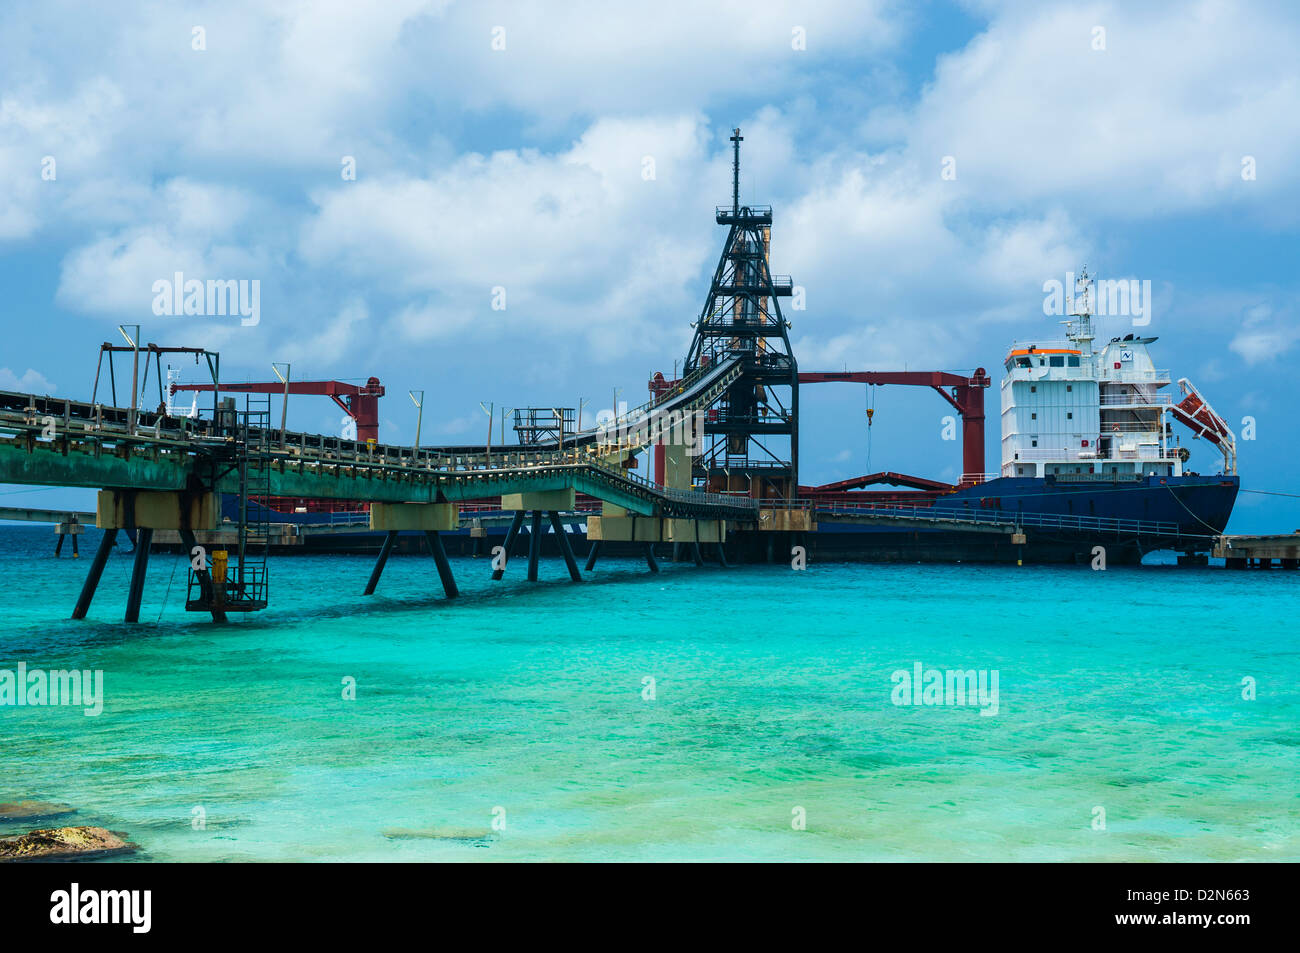 Freighter being loaded with salt in Bonaire, ABC Islands, Netherlands Antilles, Caribbean, Central America Stock Photo